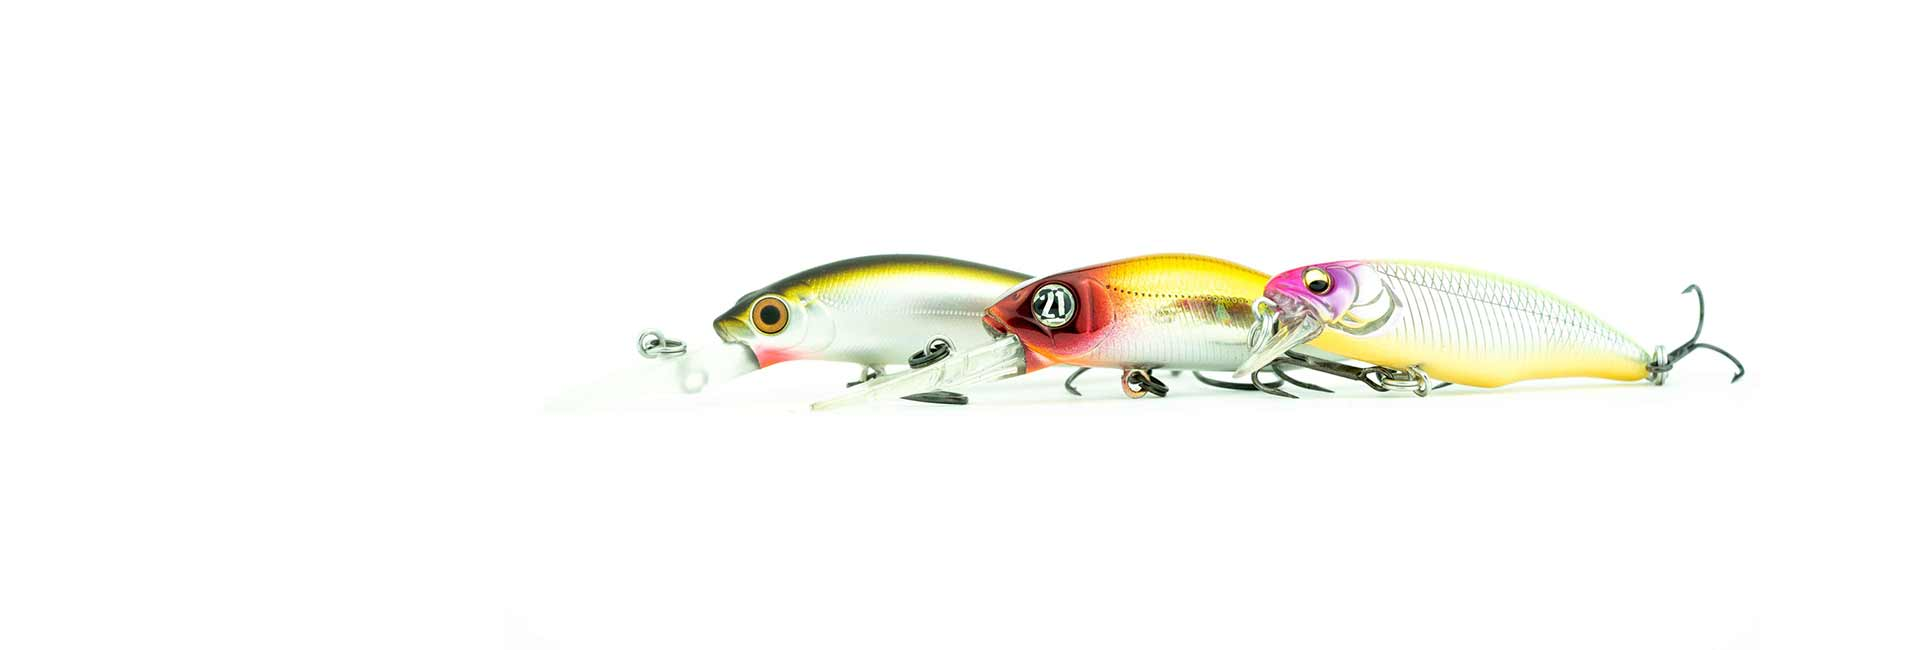 Japanese fishing lures